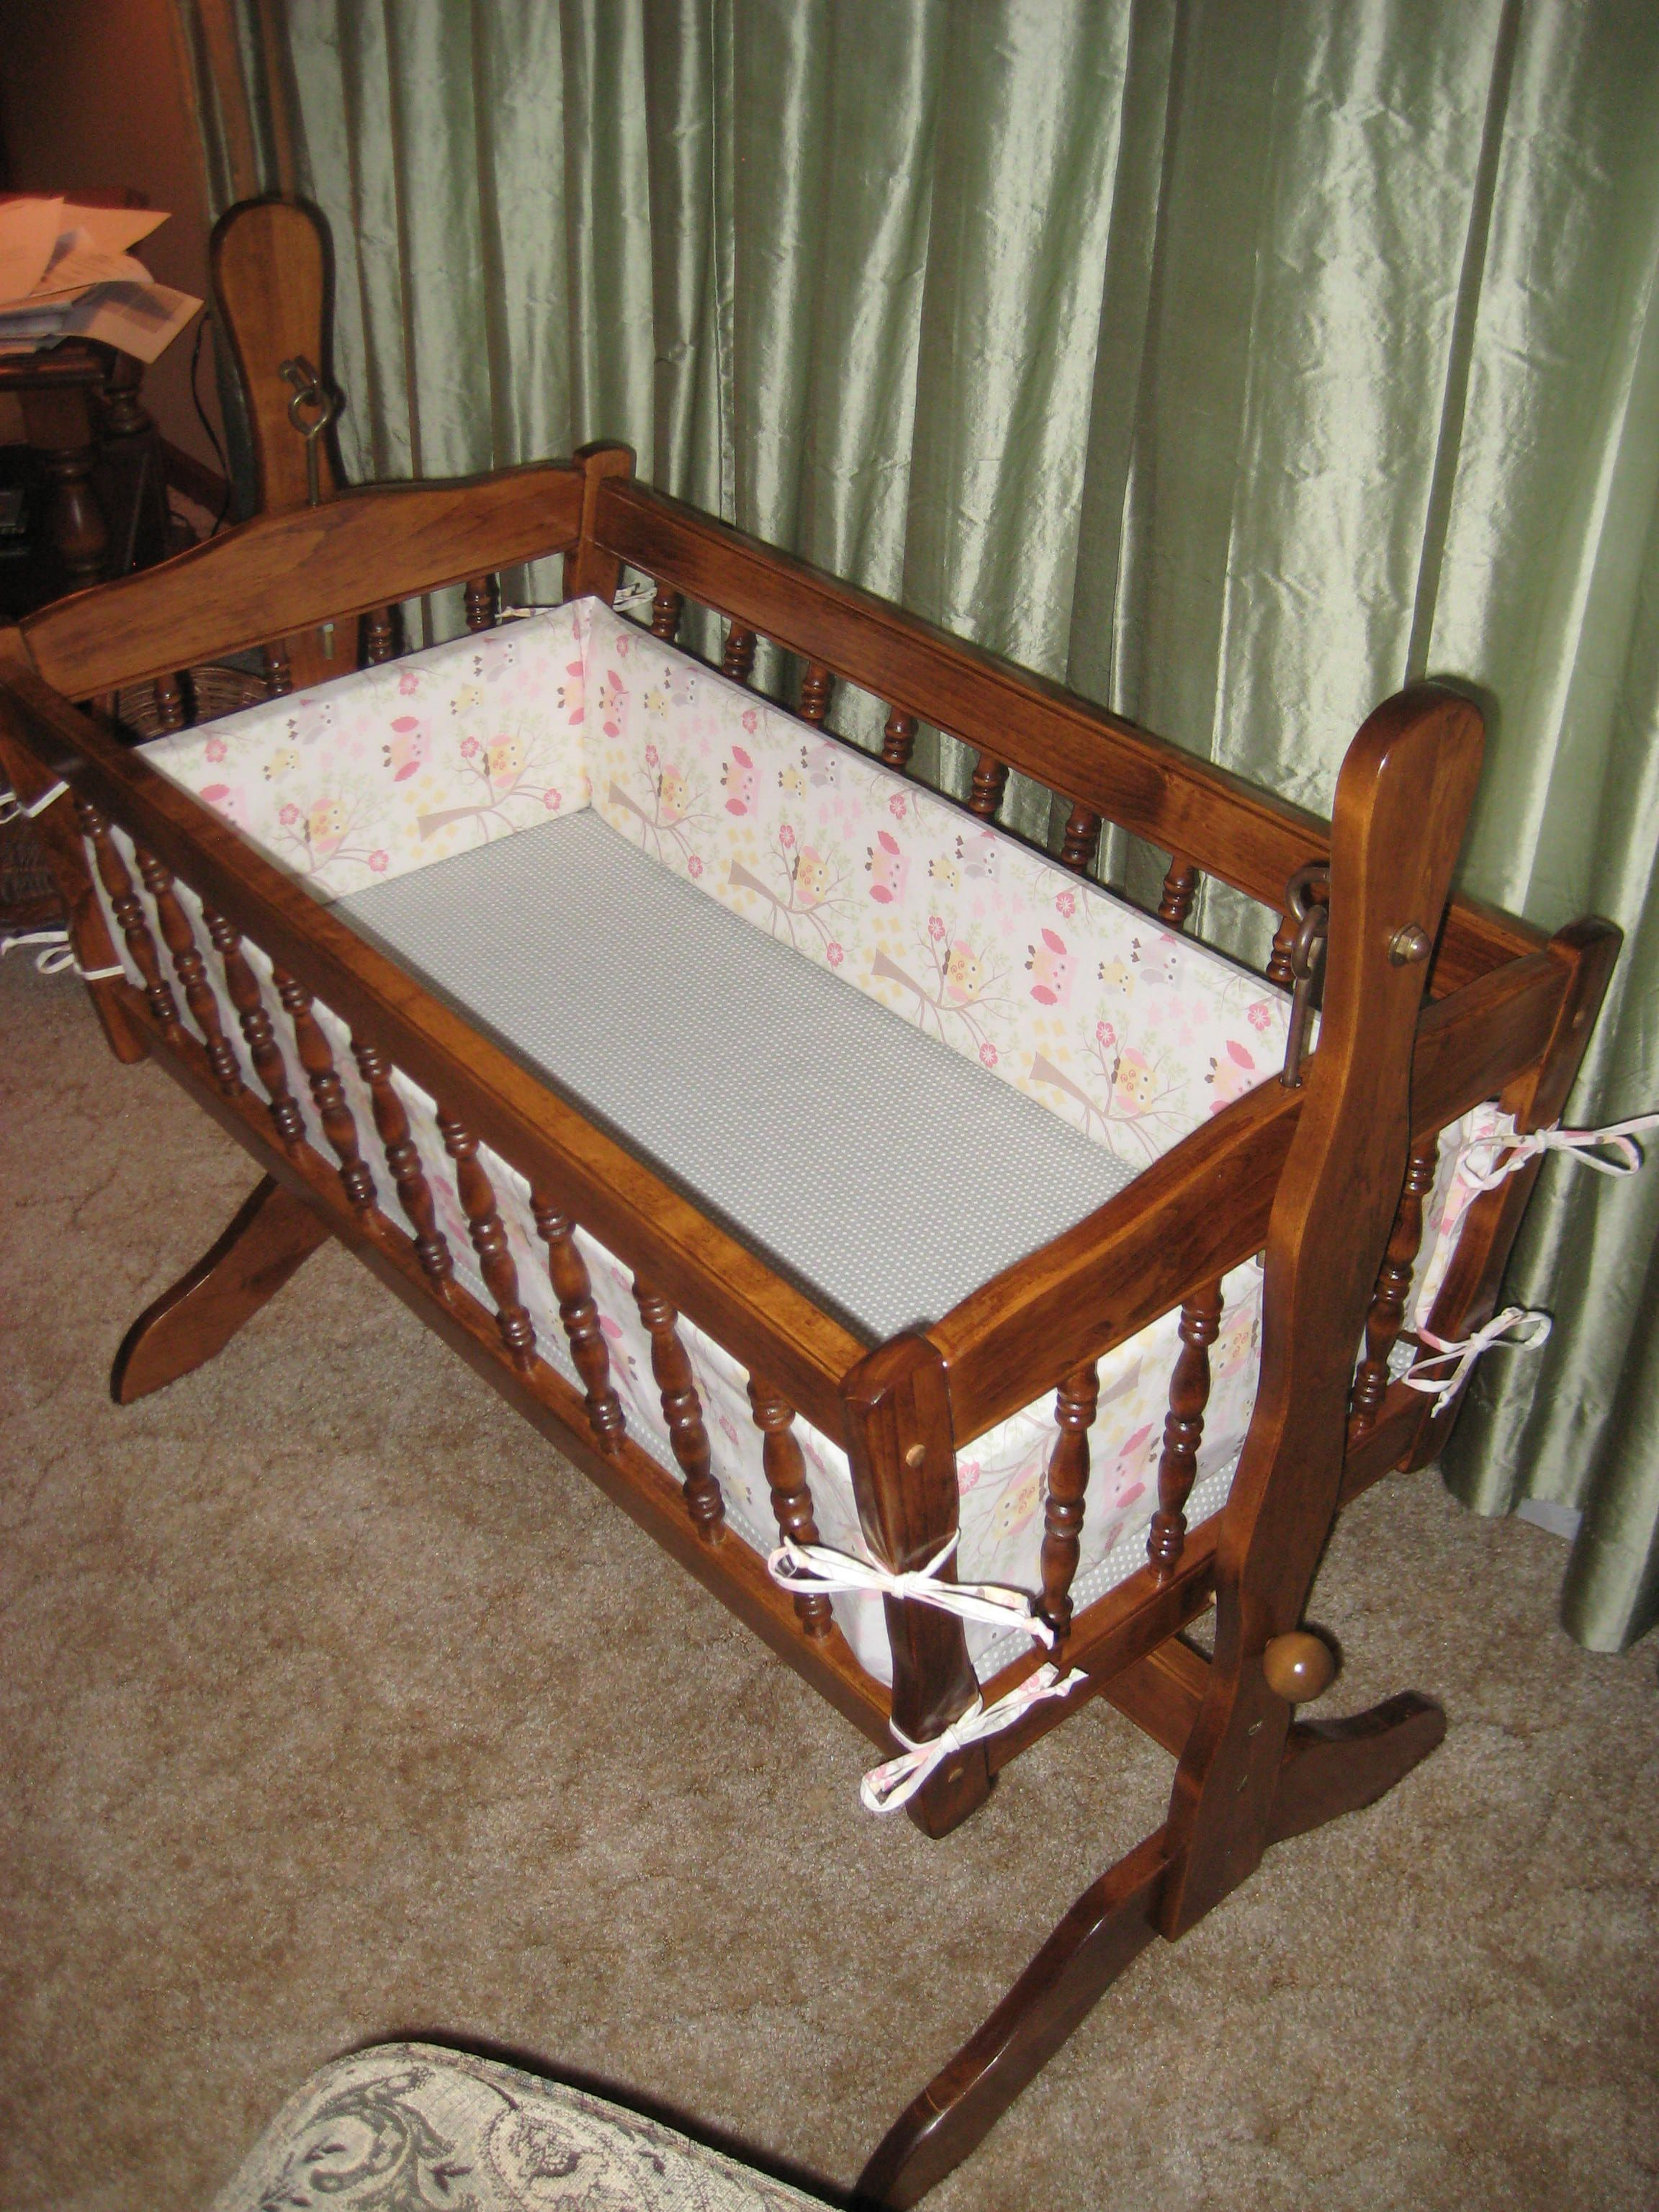 Refinished 38 Year Old Cradle And Made New Sheets And